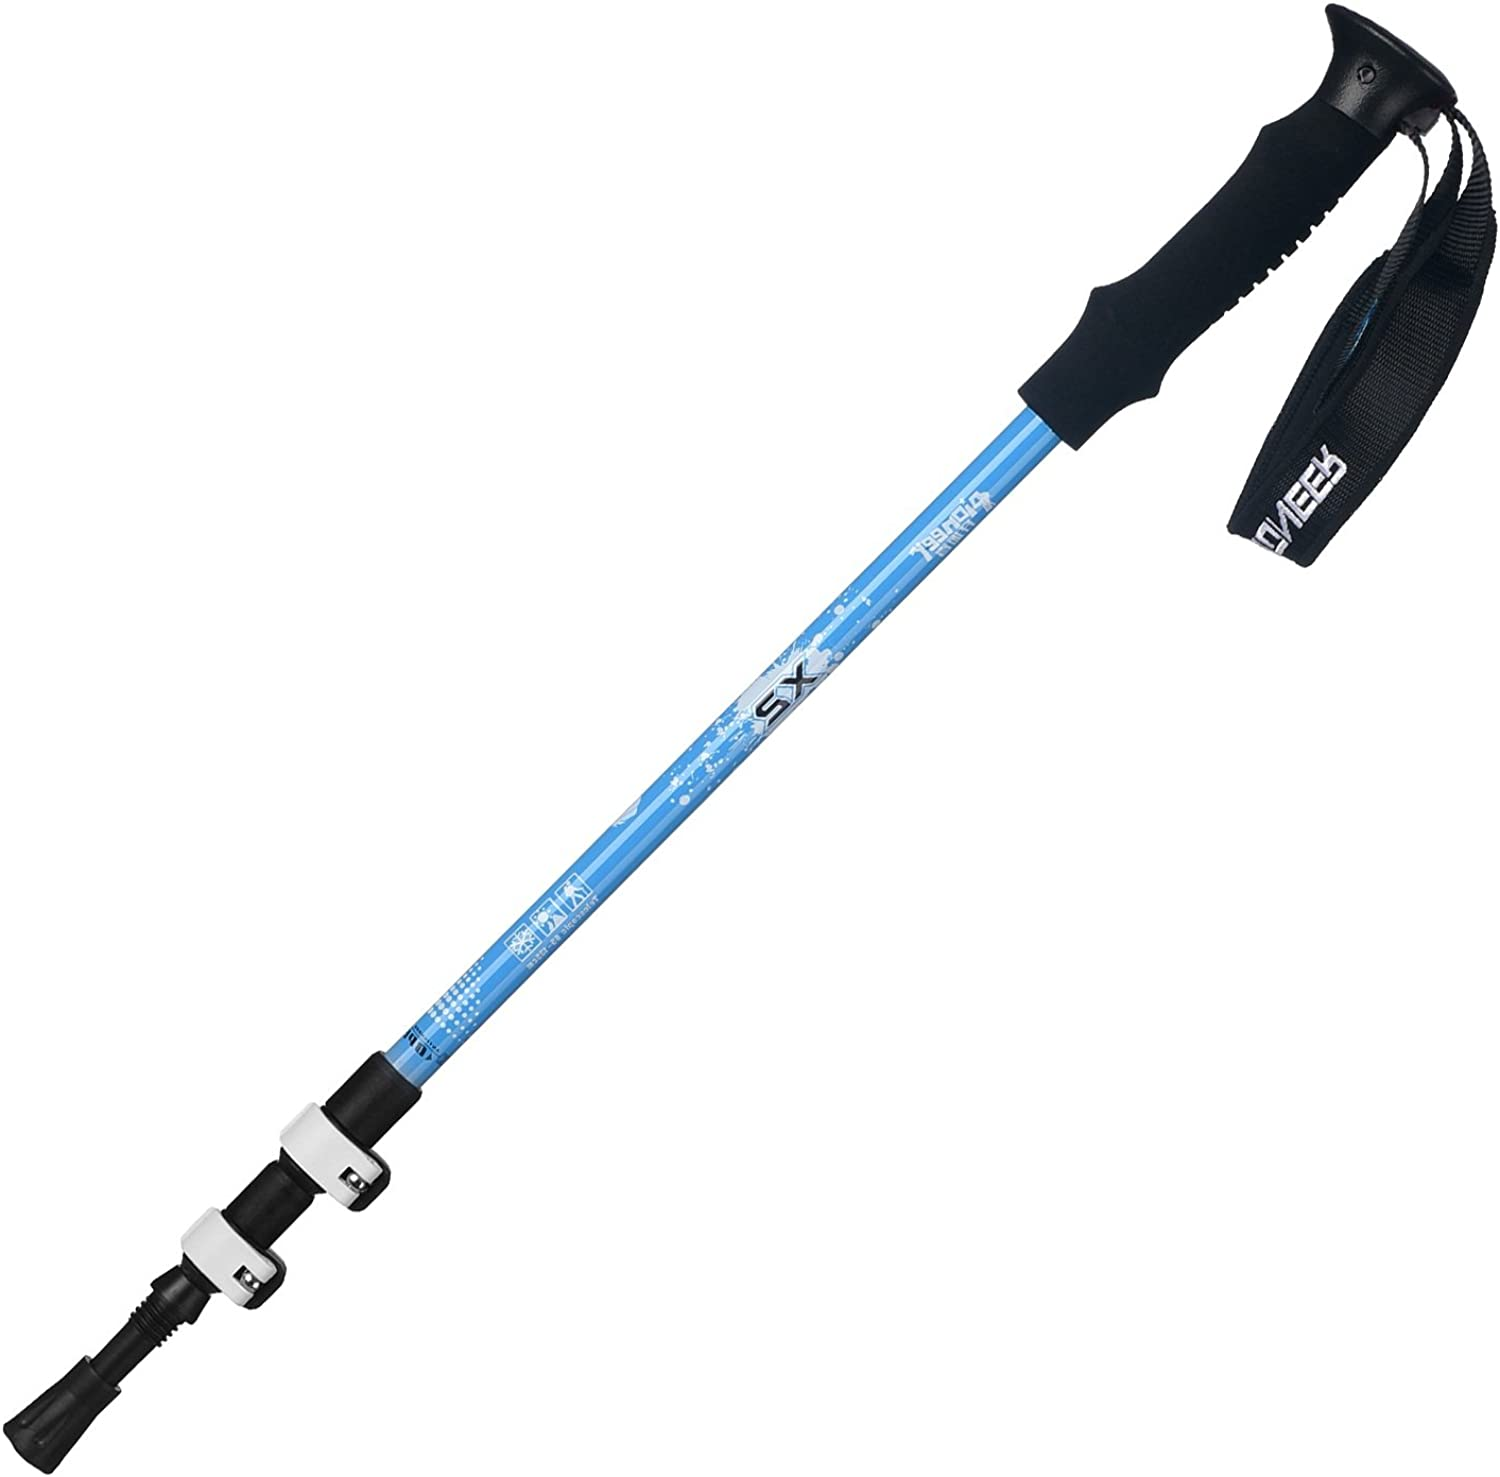 QAR External Lock Aluminum Trekking Pole Outdoor Walking Stick Hiking Pole Folding Trekking Pole Hiking Pole Trekking Pole